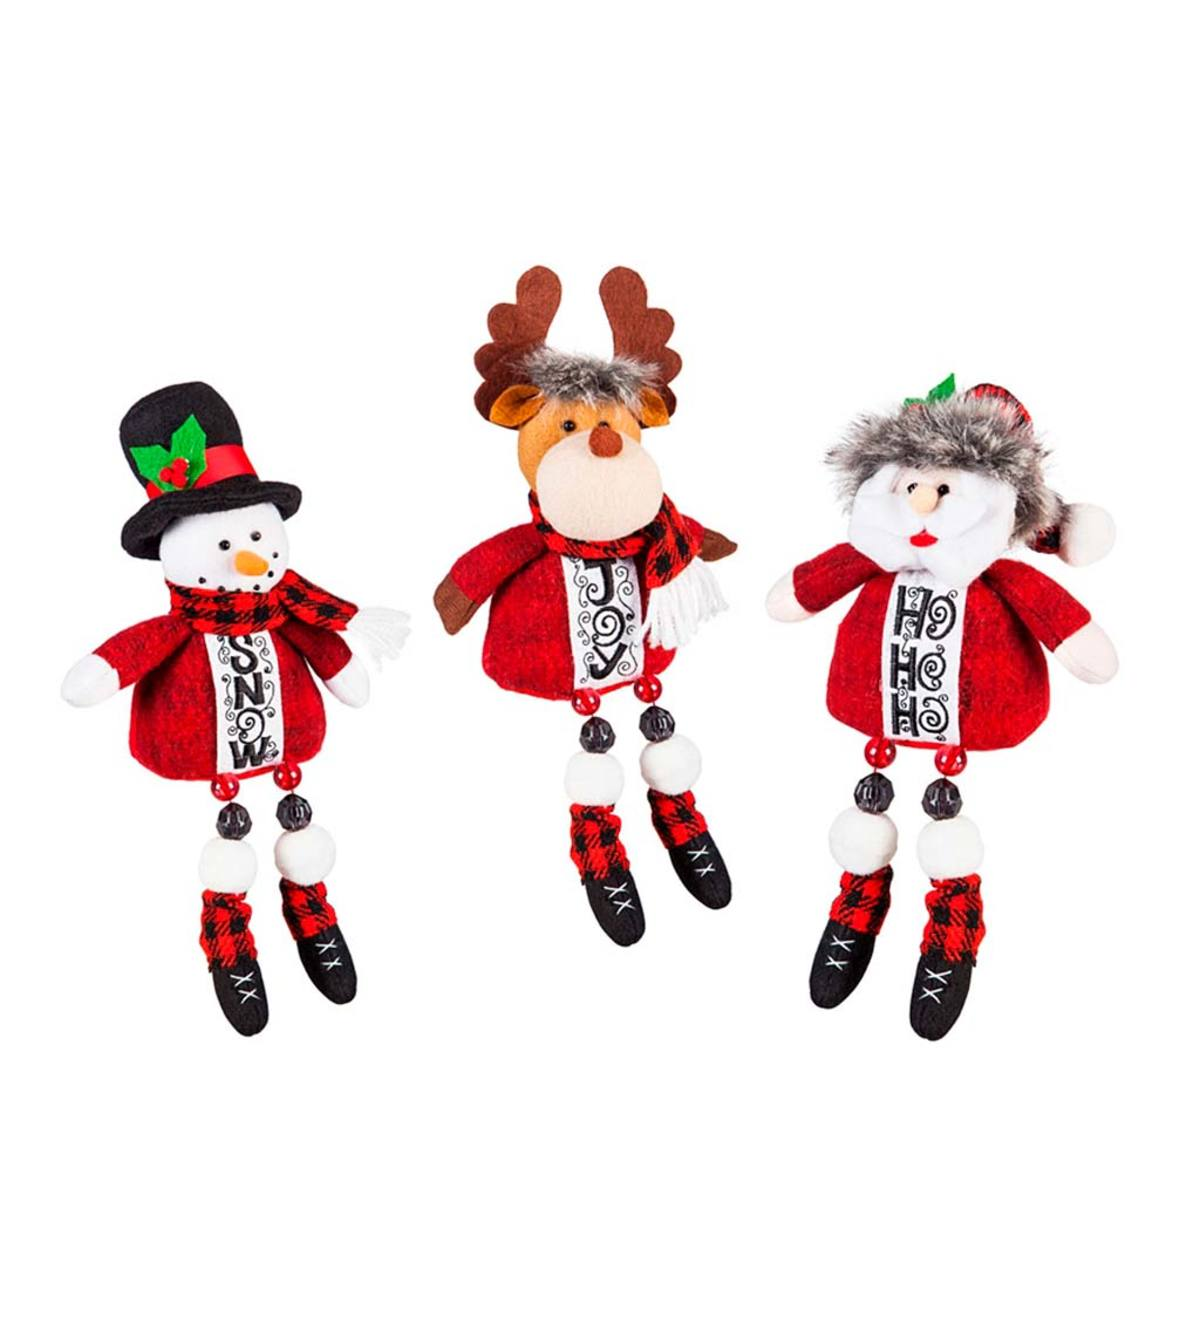 Plush Long Legs Sitting Holiday Friends, Set of 3